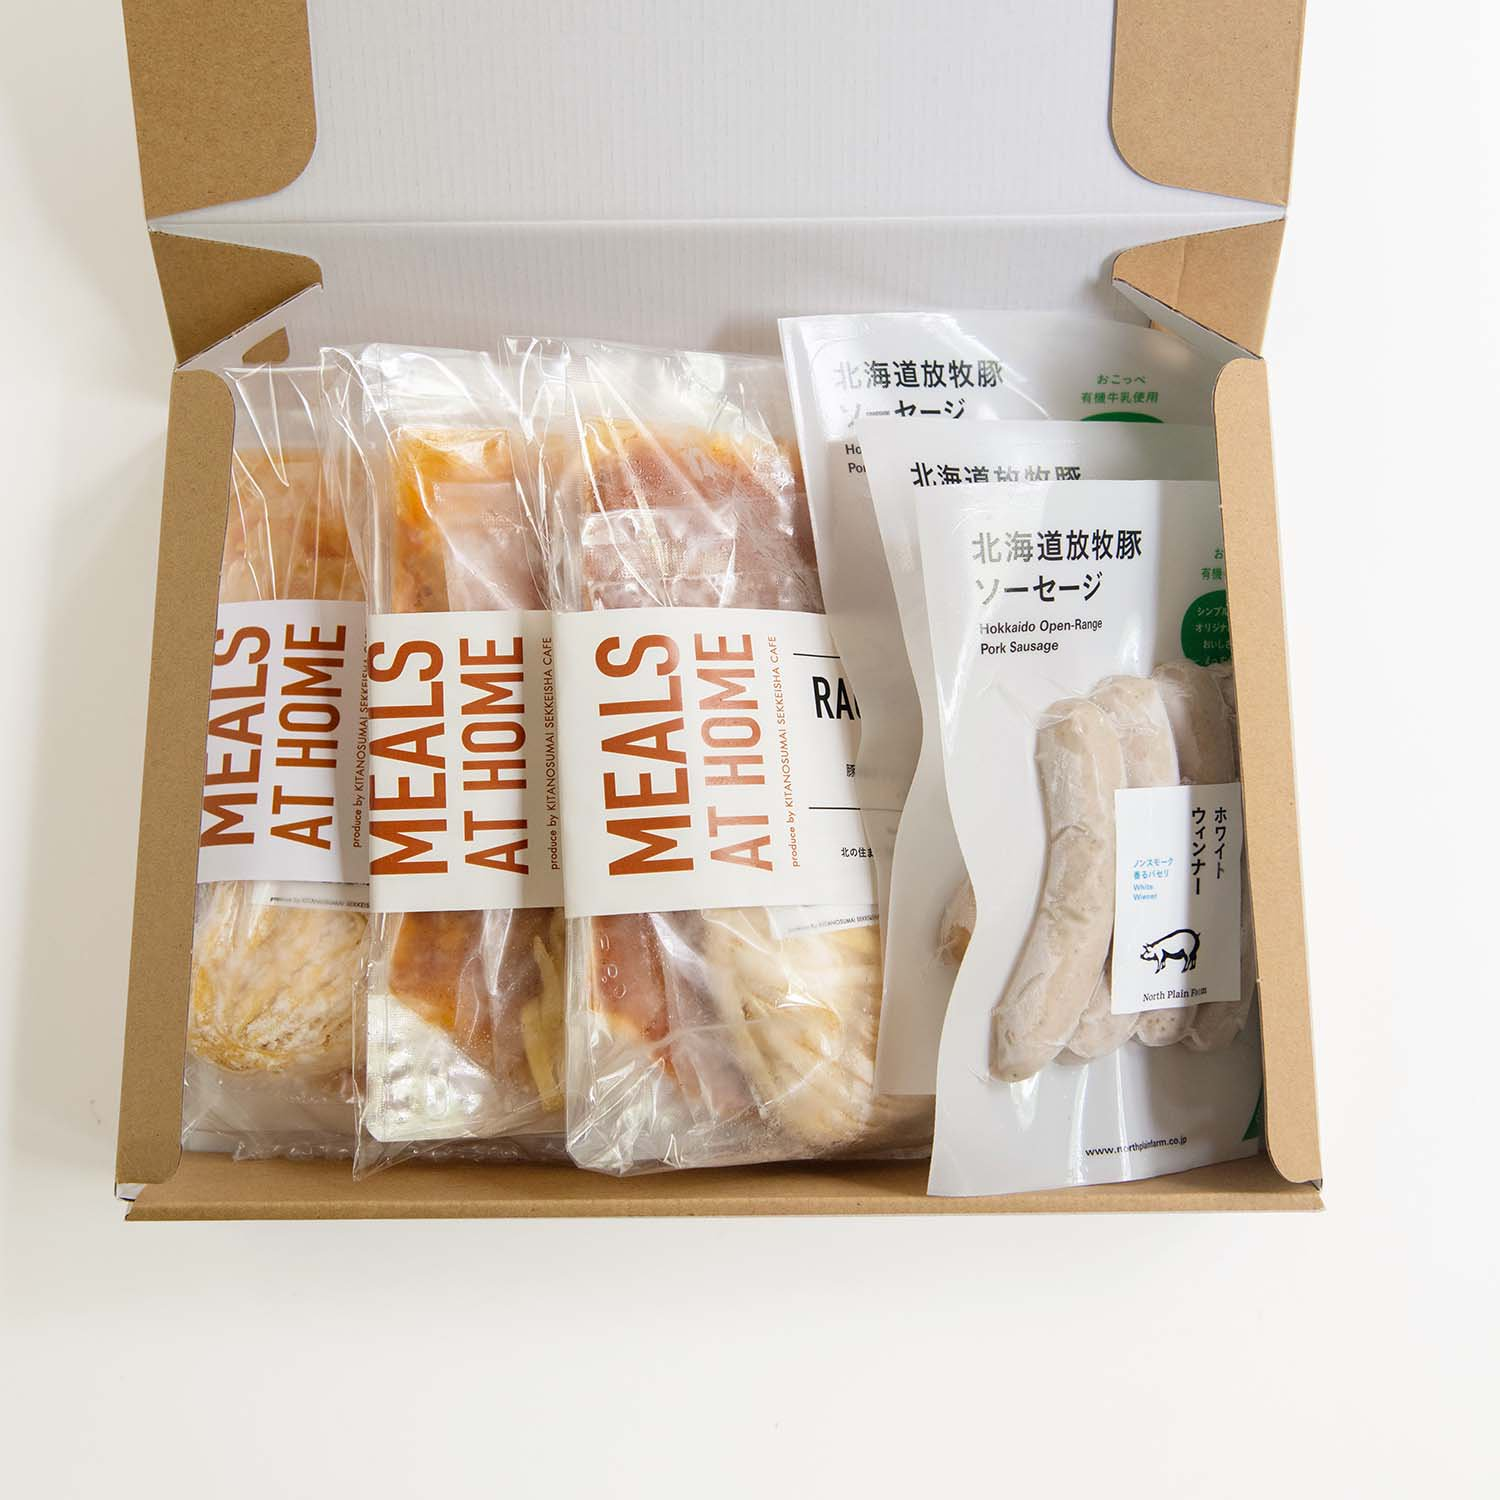 MEALS AT HOME GIFT SET C<br> パスタセットとソーセージのセット